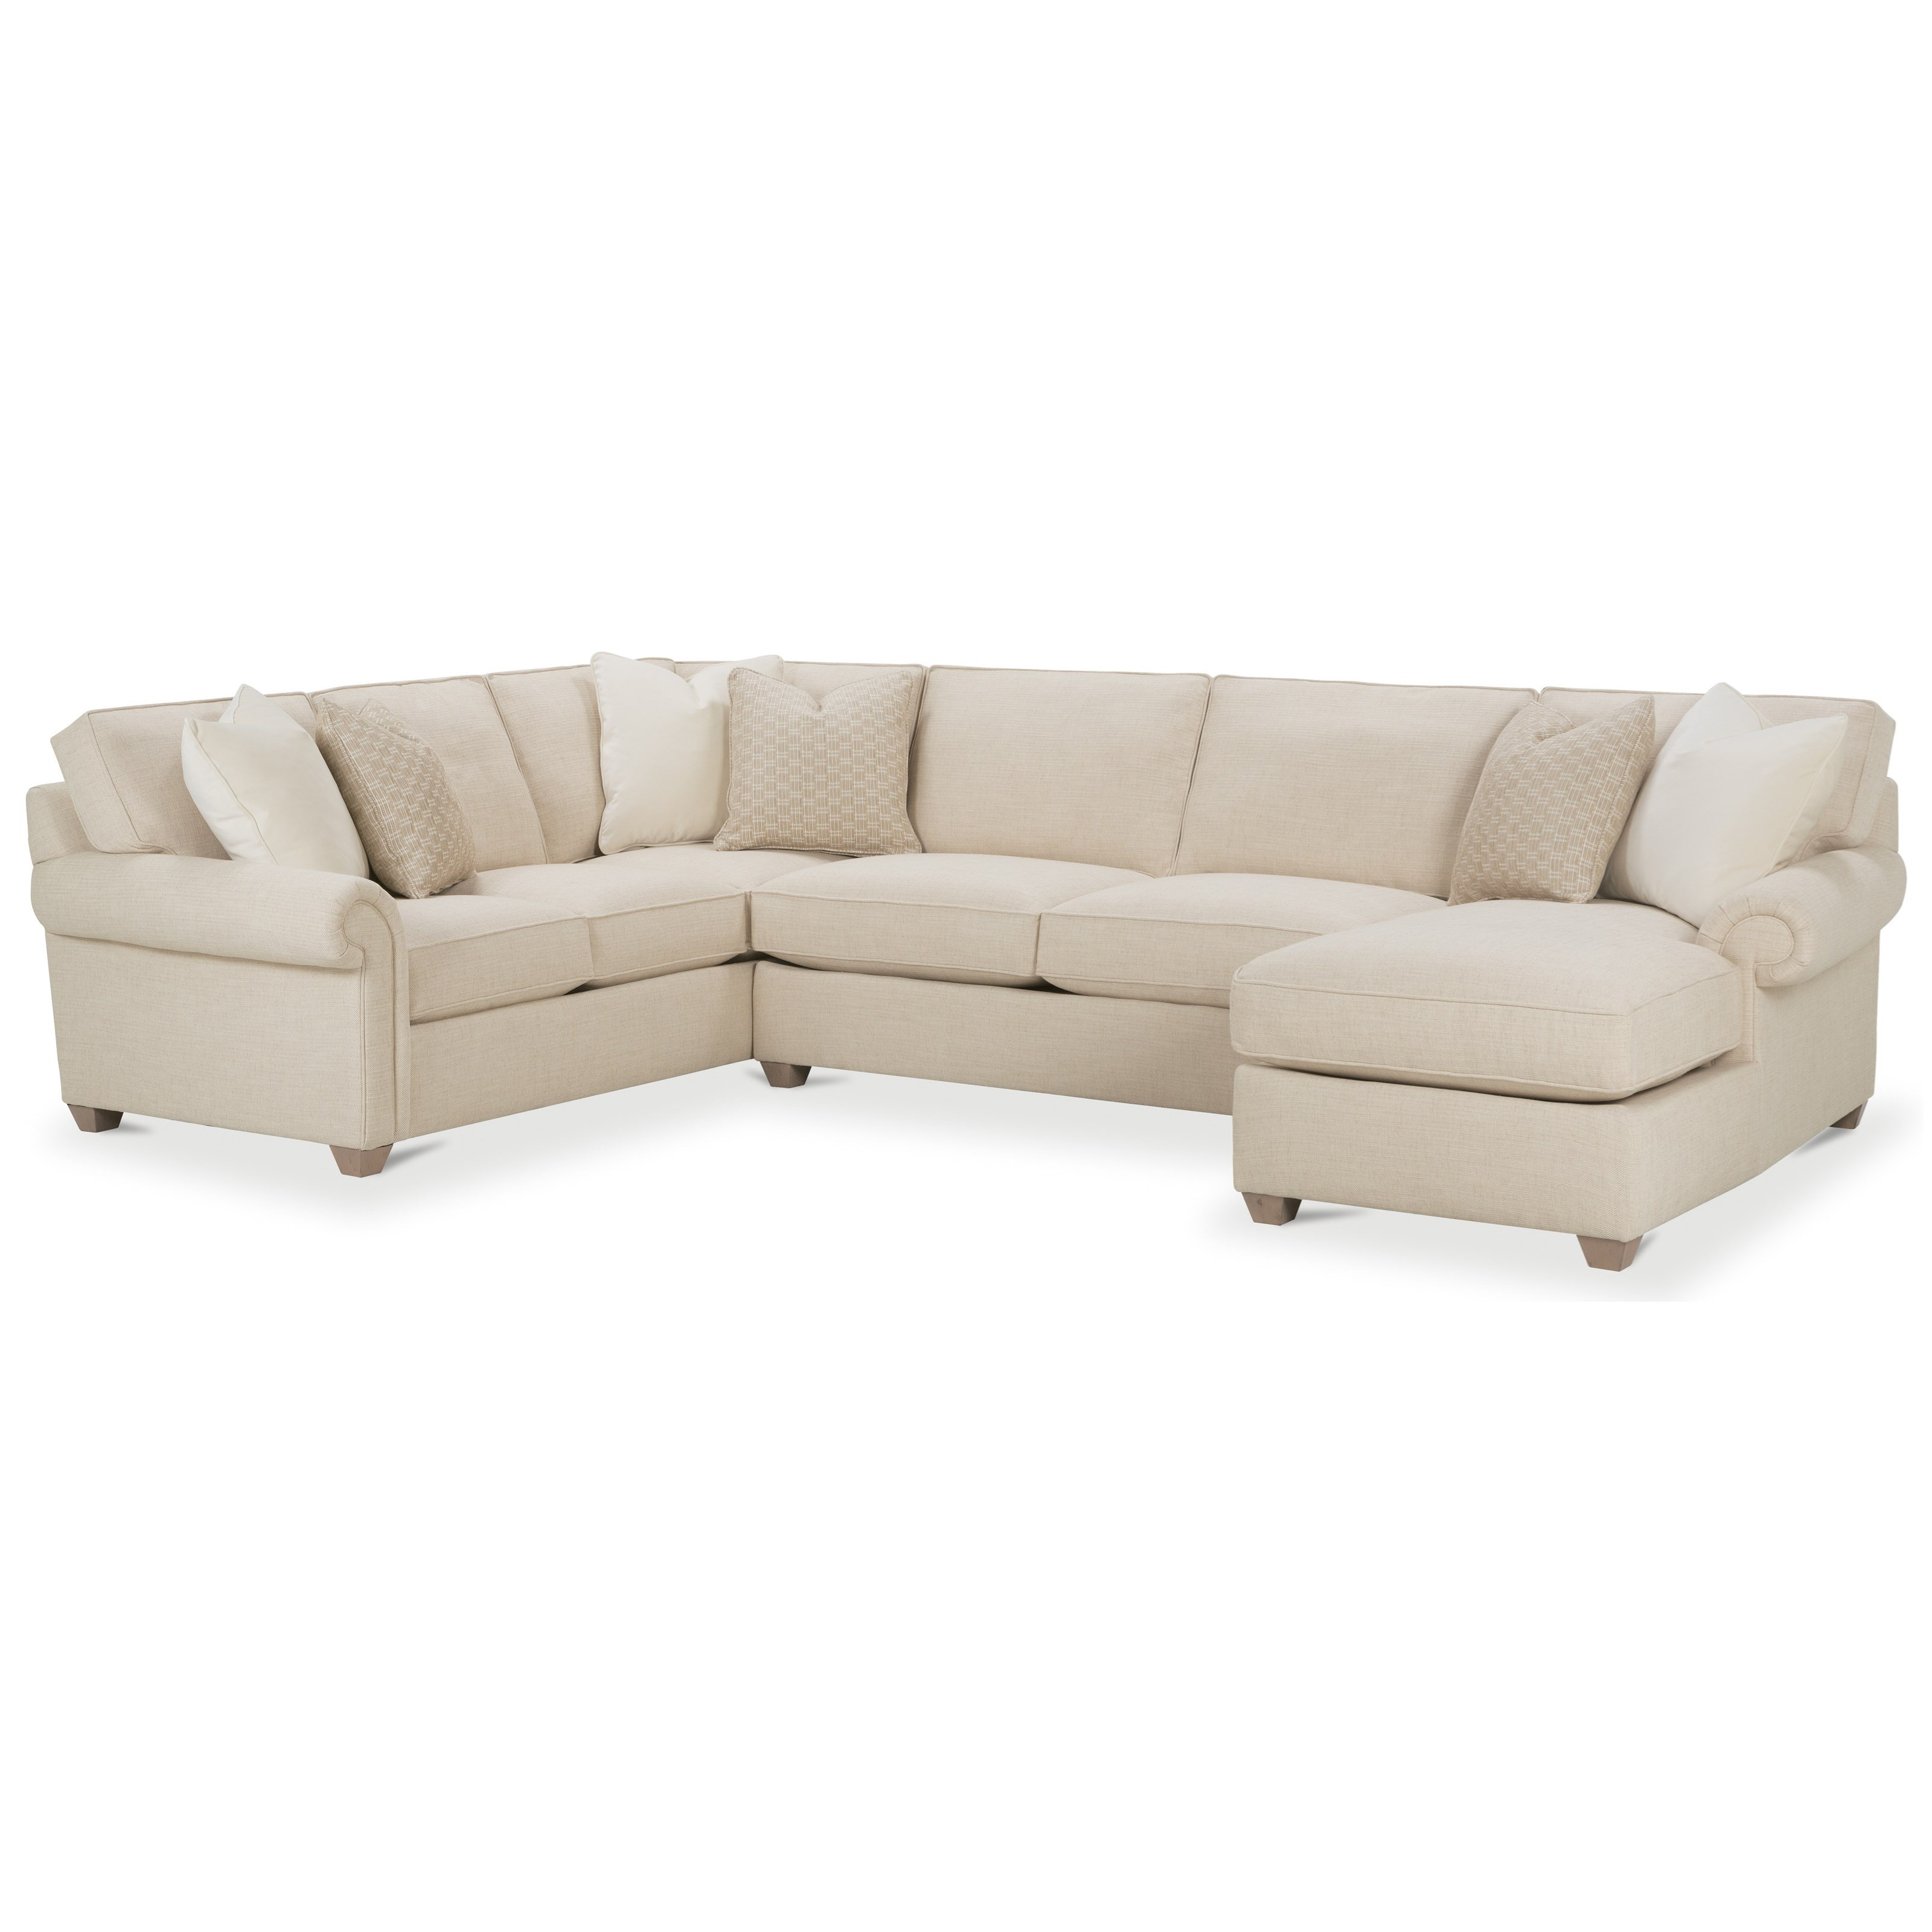 Rowe Morgan Traditional Three Piece Sectional Sofa With Chaise Becker Furniture World